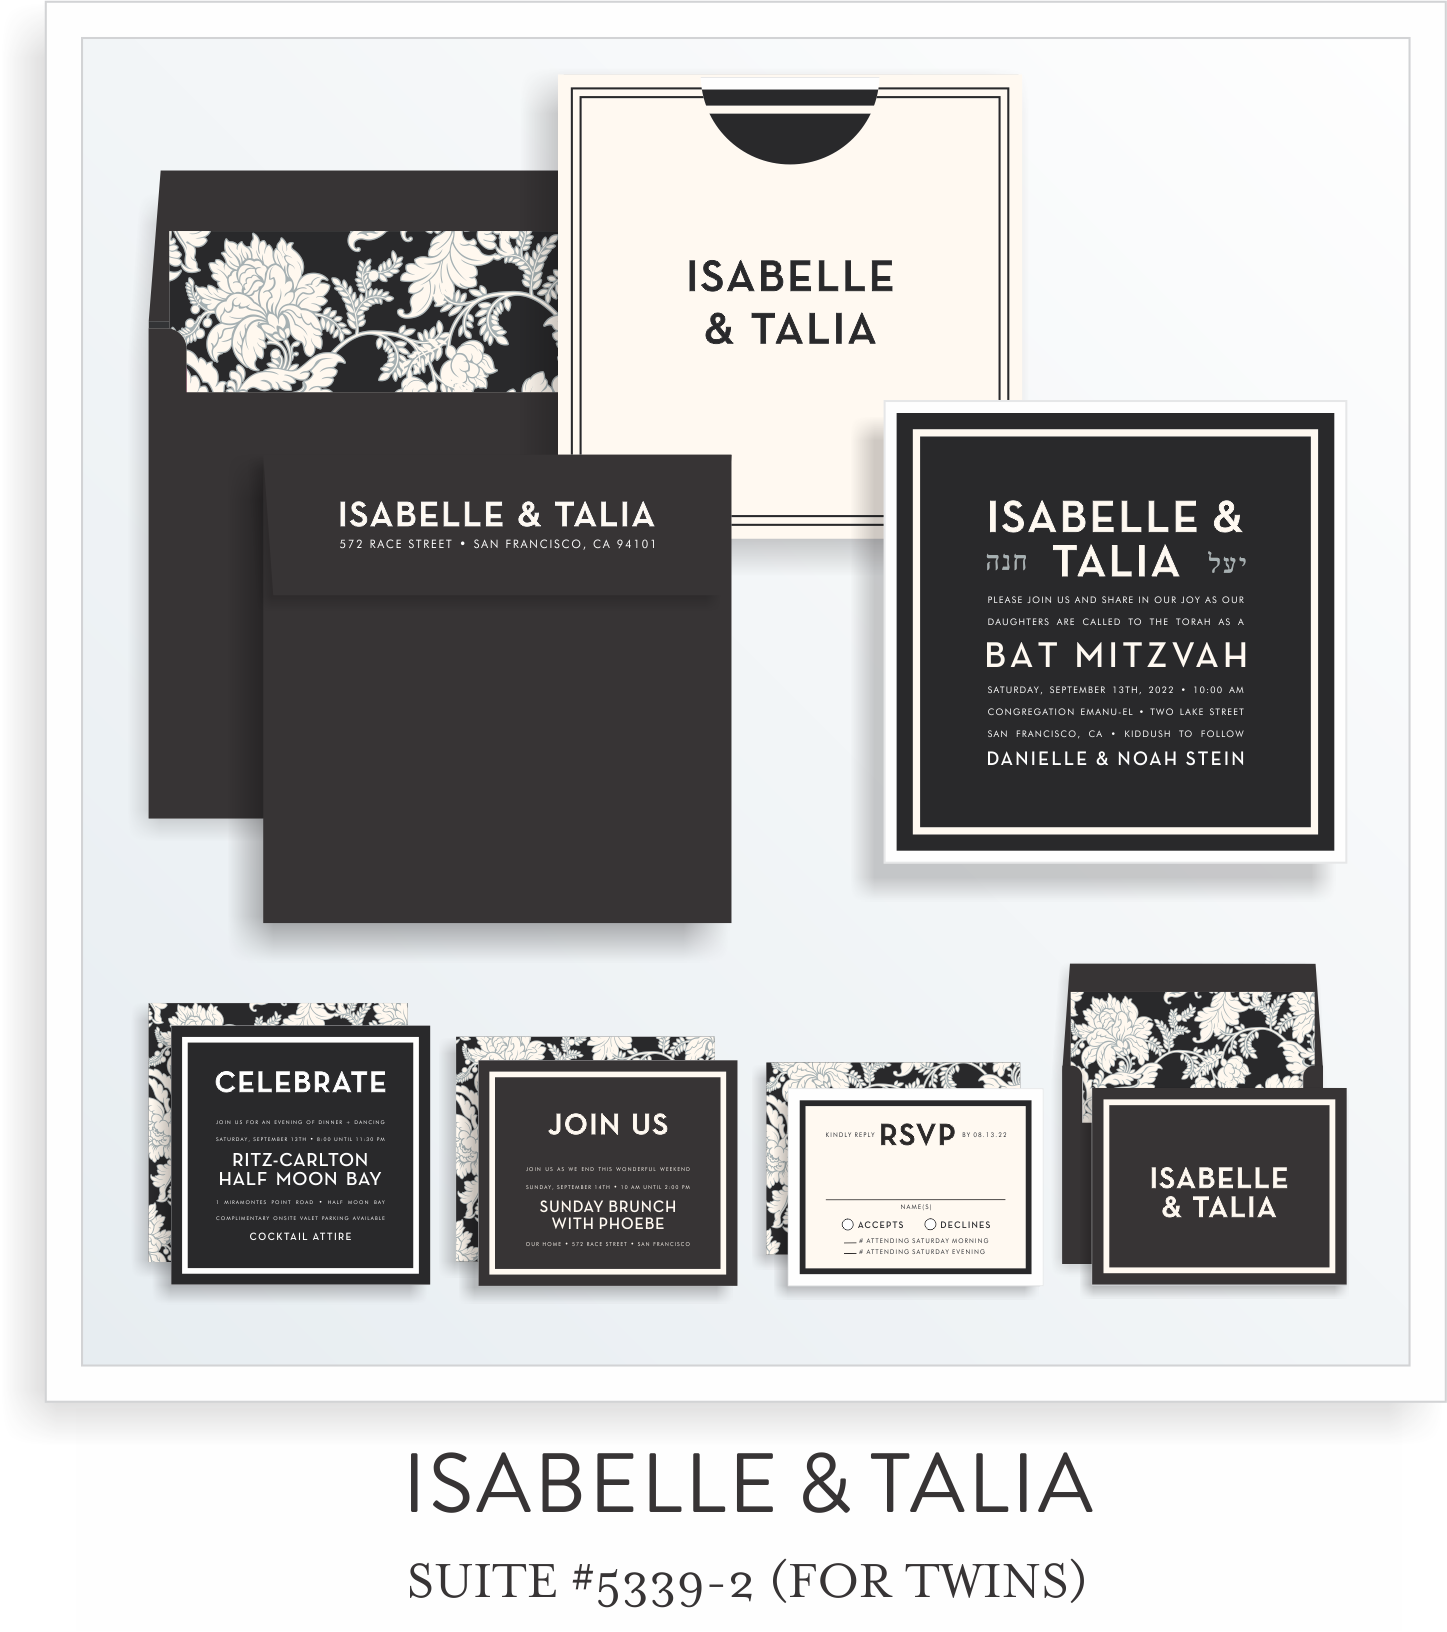 5339-2 ISABELLE & TALIA SUITE THUMB.png